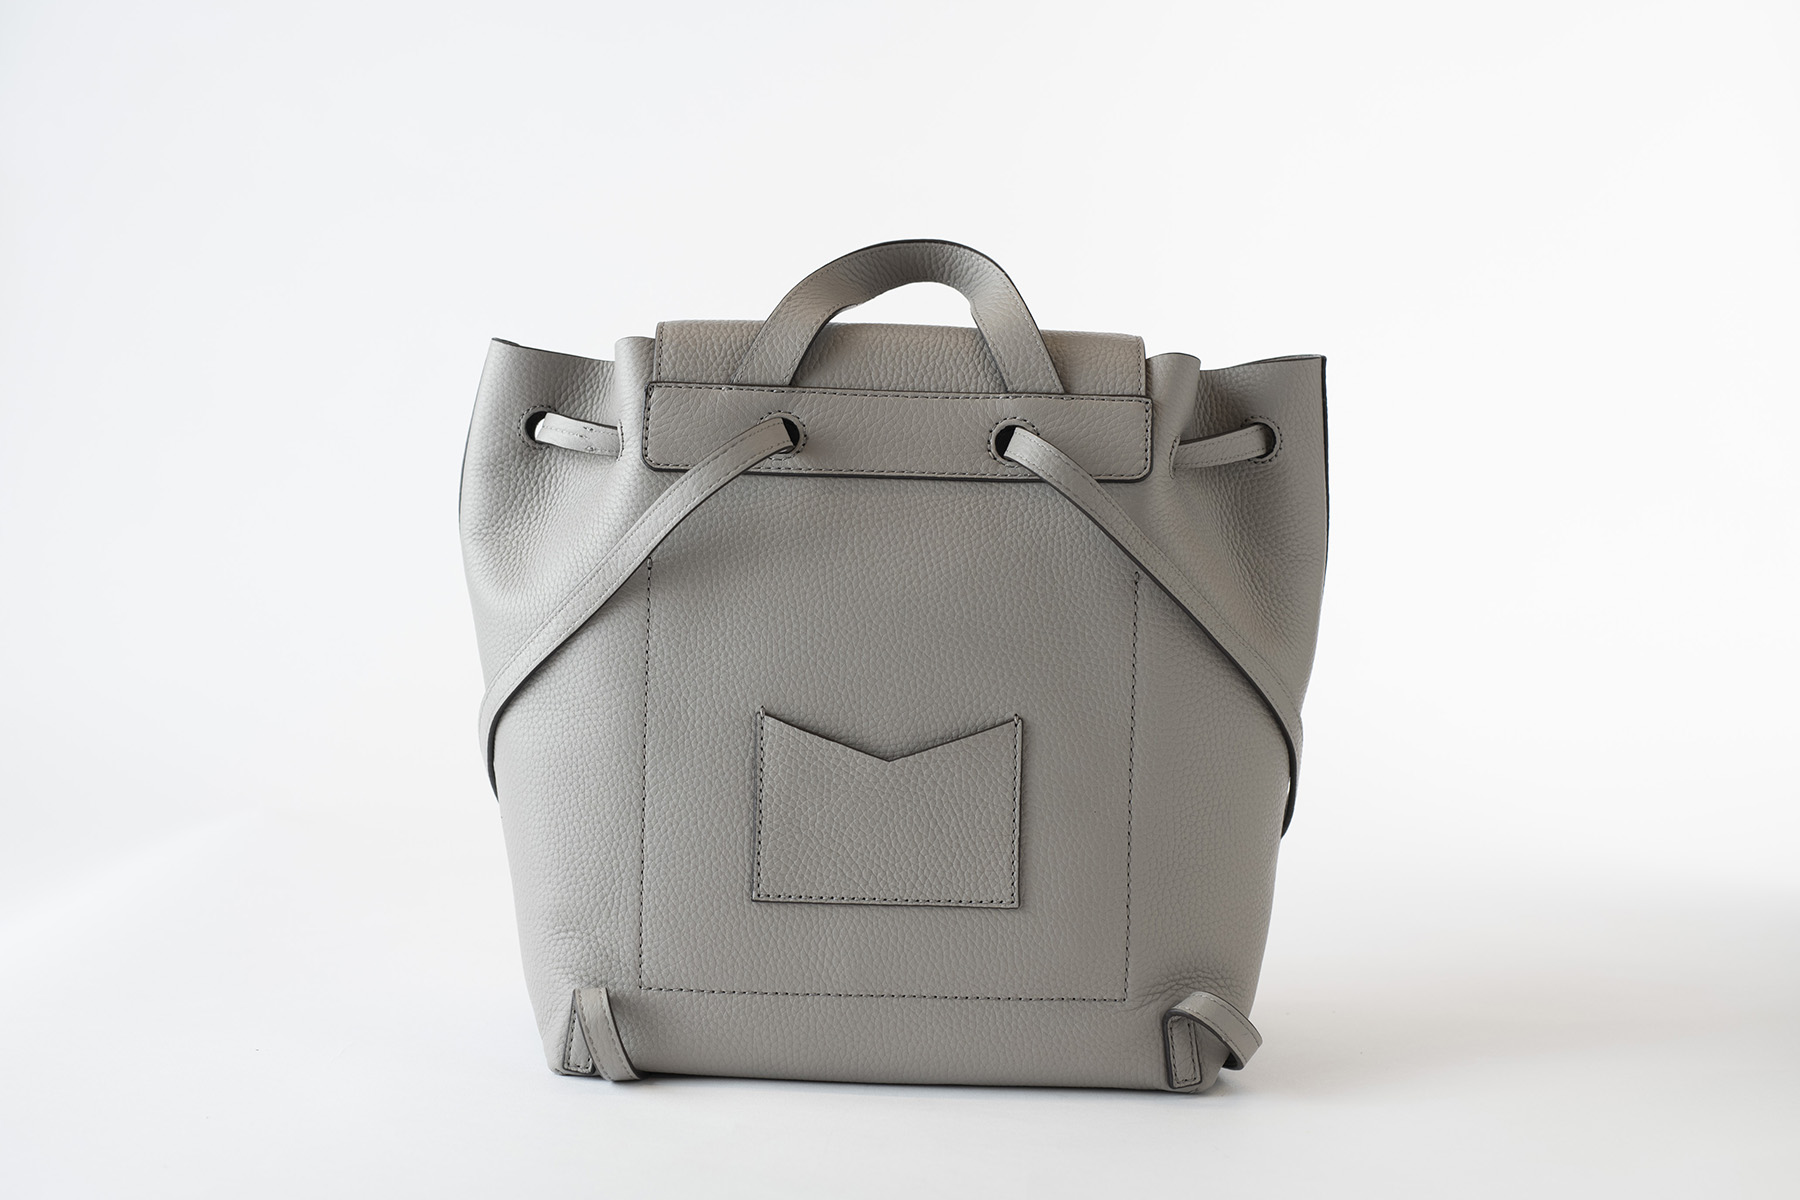 e472b303b962 ... Kors Junie Kors Studio Medium Flap Backpack Leather! But I'm not your  ordinary backpack. My smooth leather body touch and pearl grey finish will  have ...